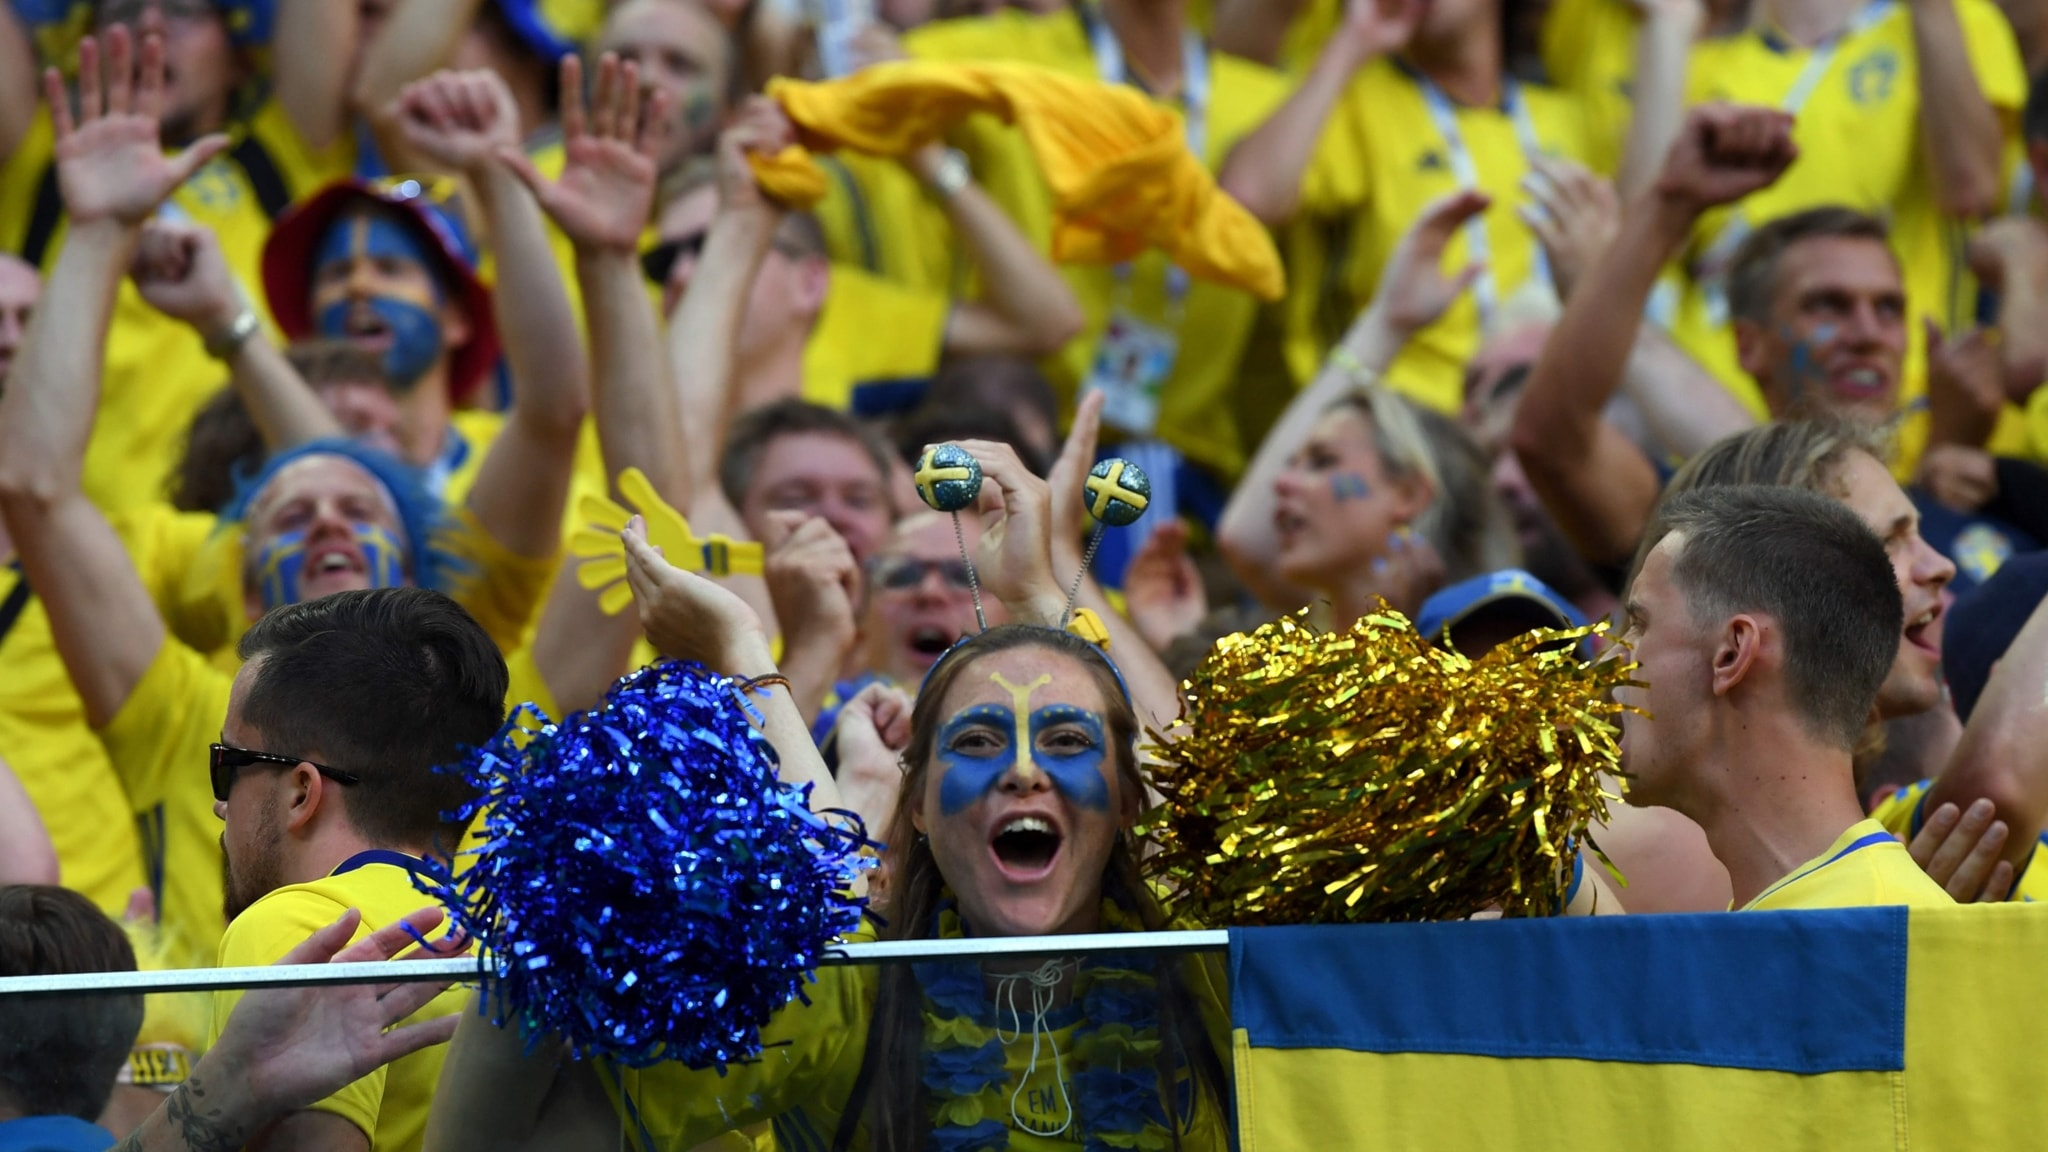 Sweden to World Cup 2018 quarterfinals, Almedalen, new sexual consent law